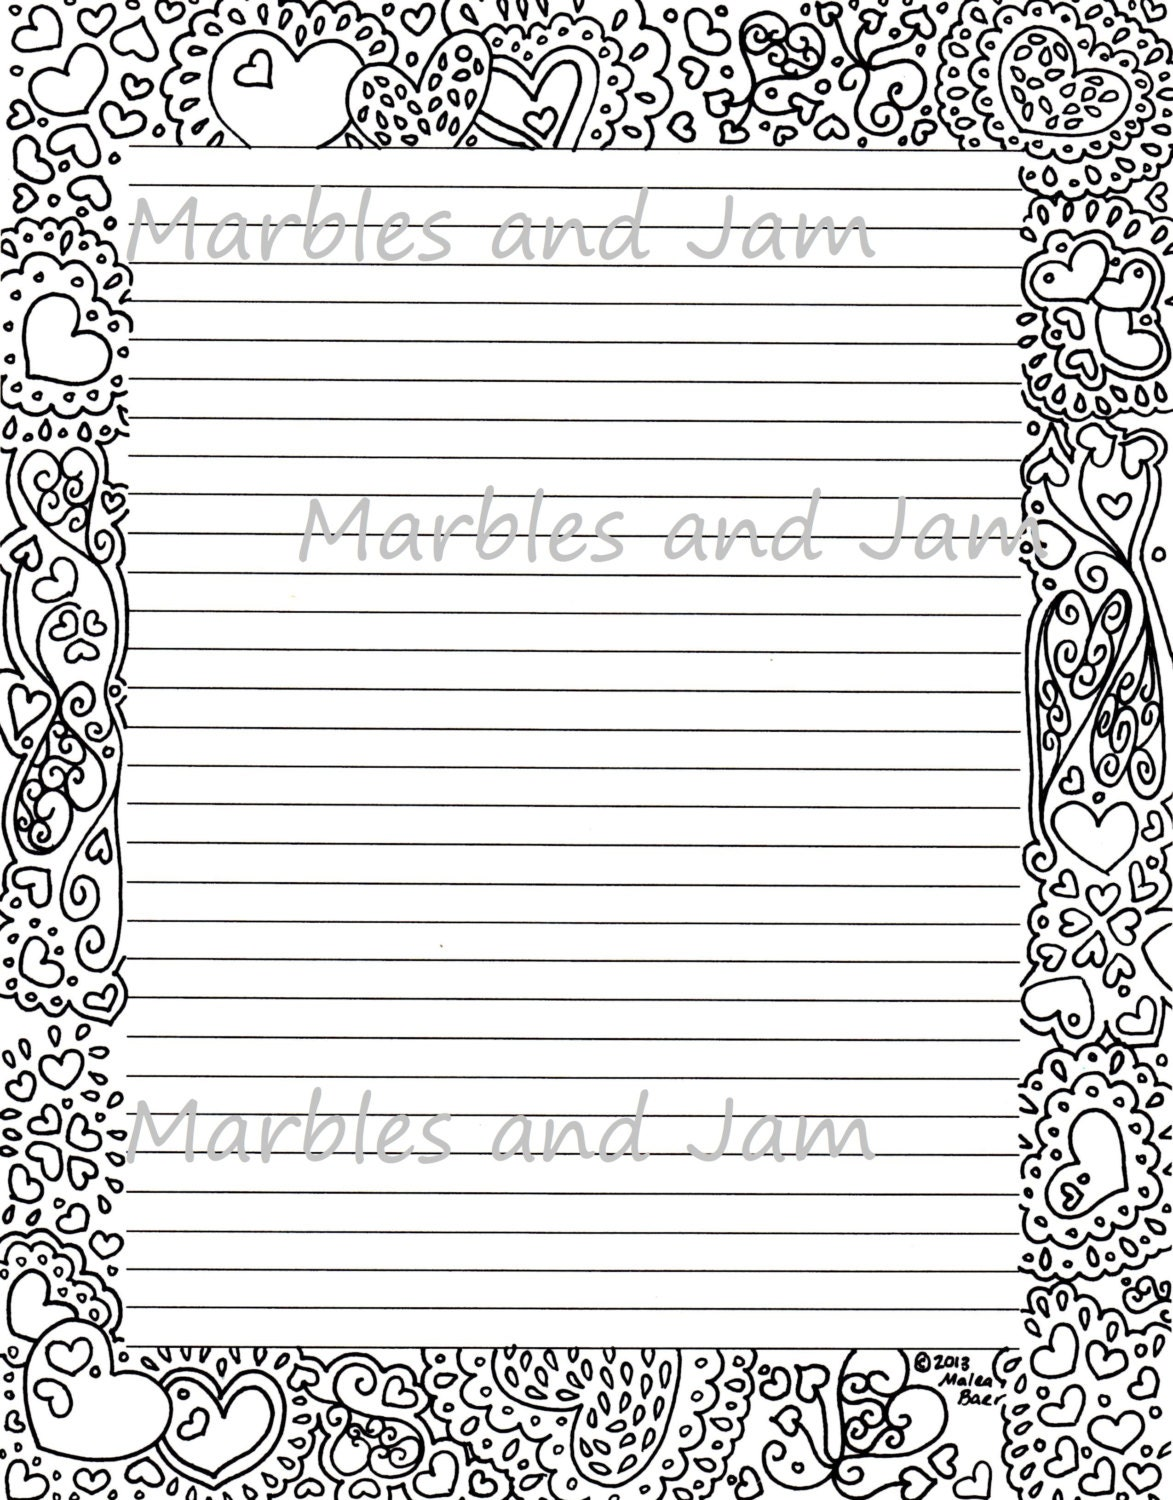 Hearts border lined printable stationery and coloring page zoom spiritdancerdesigns Image collections